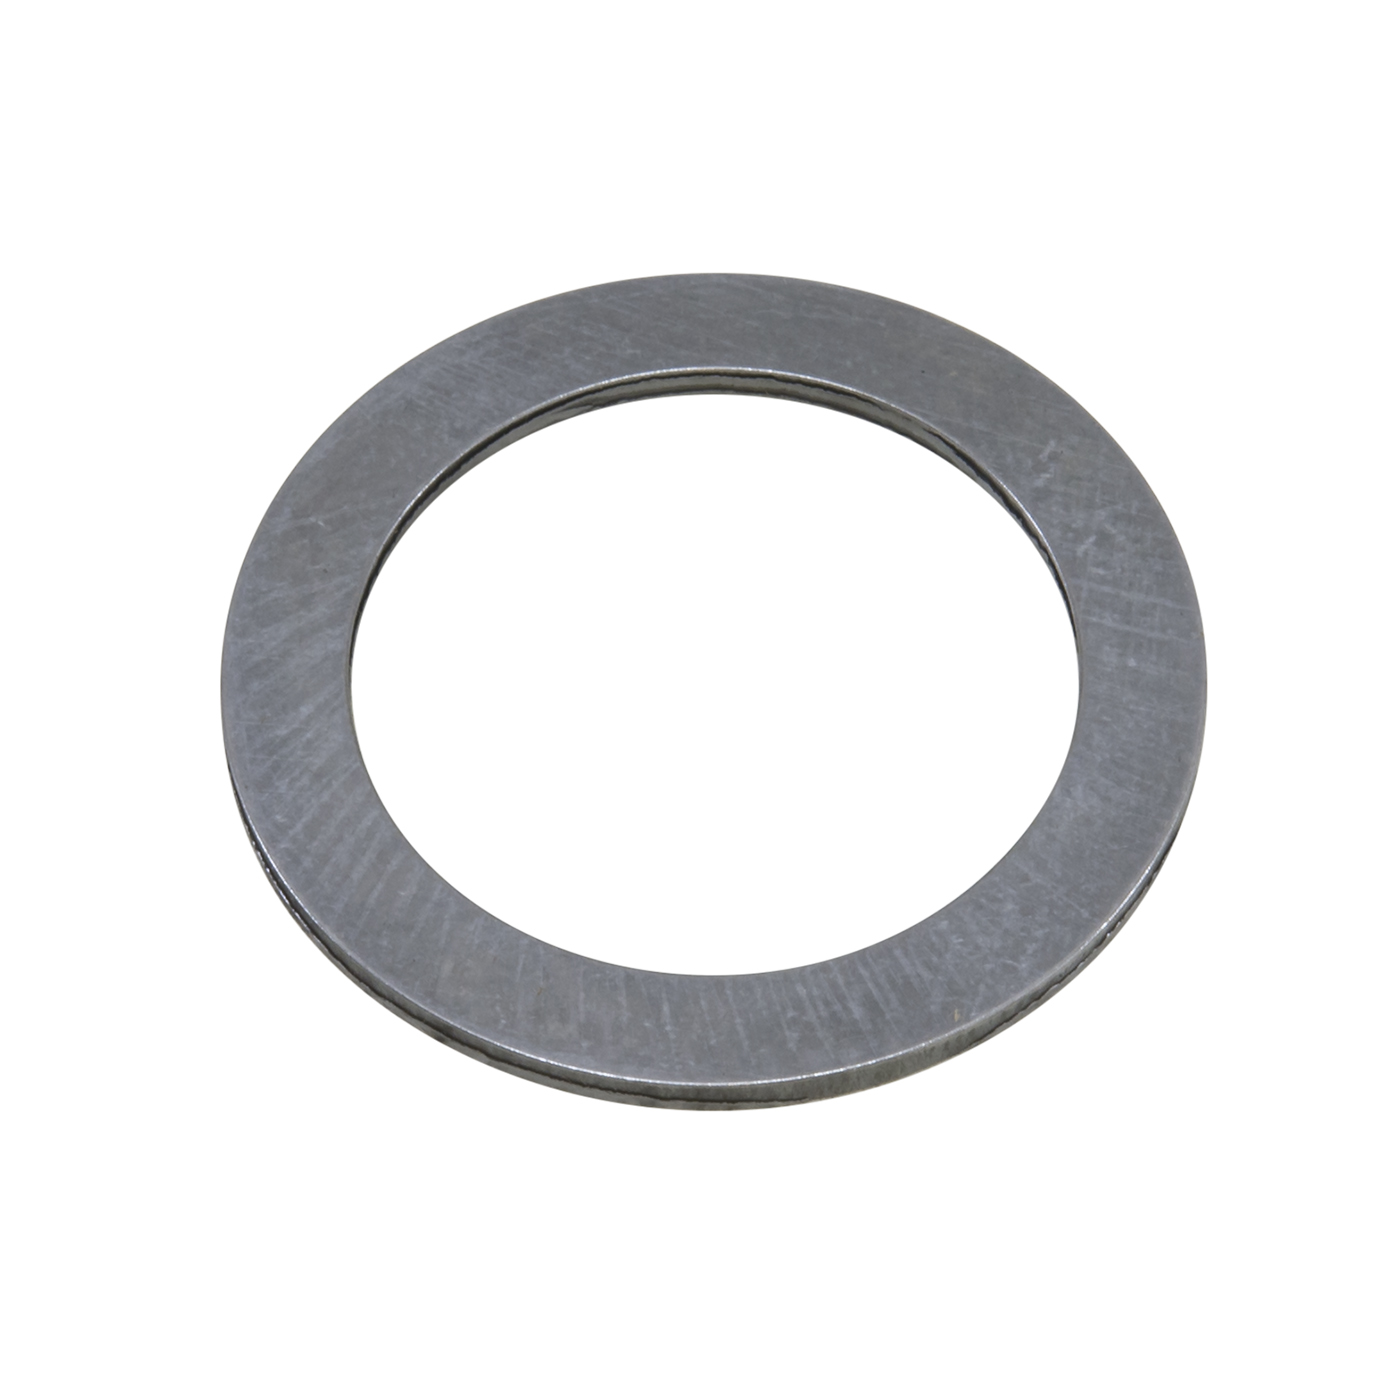 YP N1926D - Adaptor Washer for 28 Spline Pinion in Oversize Support, for 9